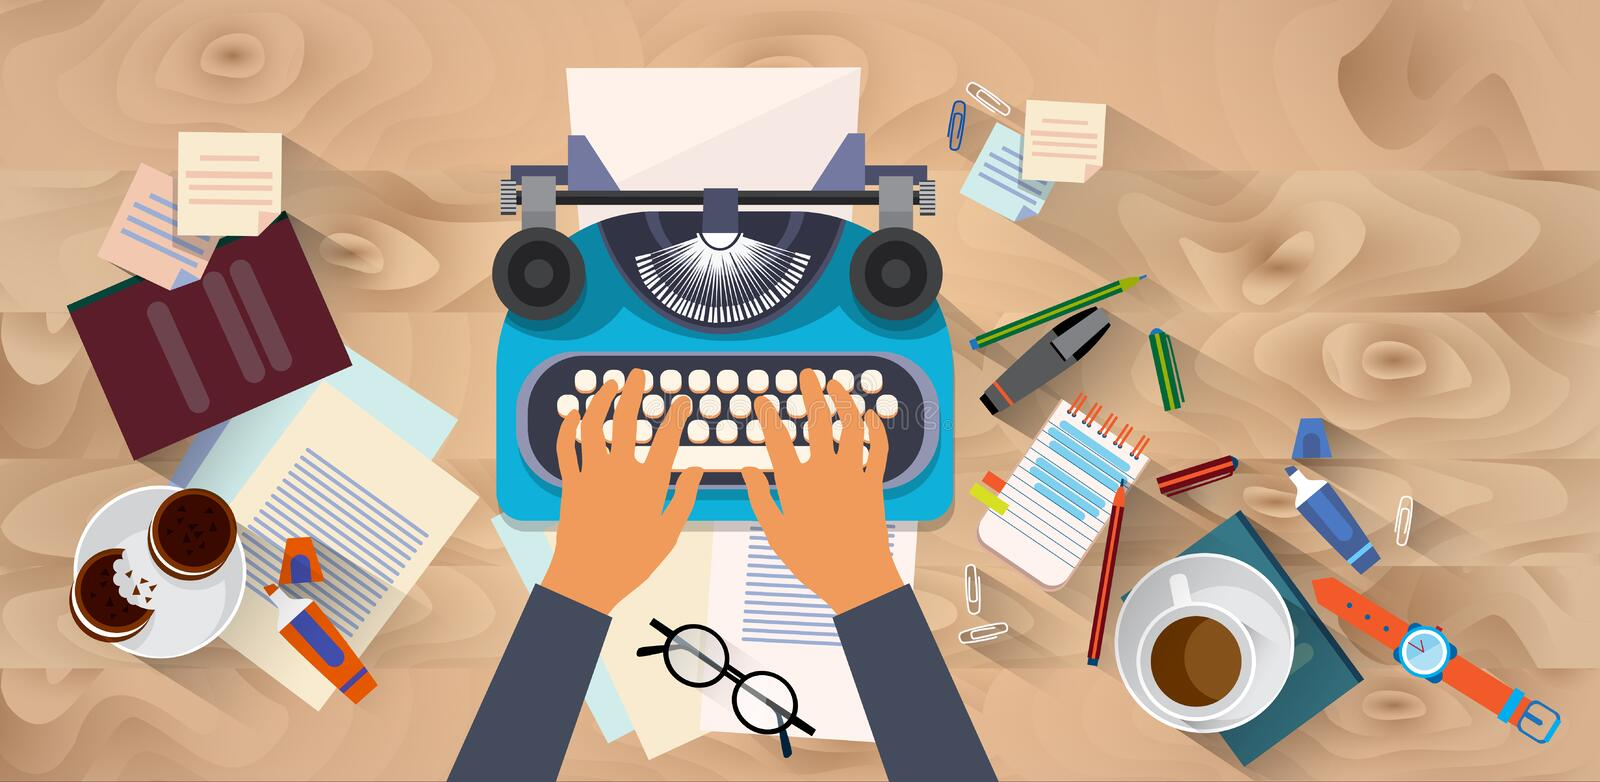 Hands Typing Text Writer Author Blog Typewrite Wooden Texture Desk Top Angle View royalty free illustration